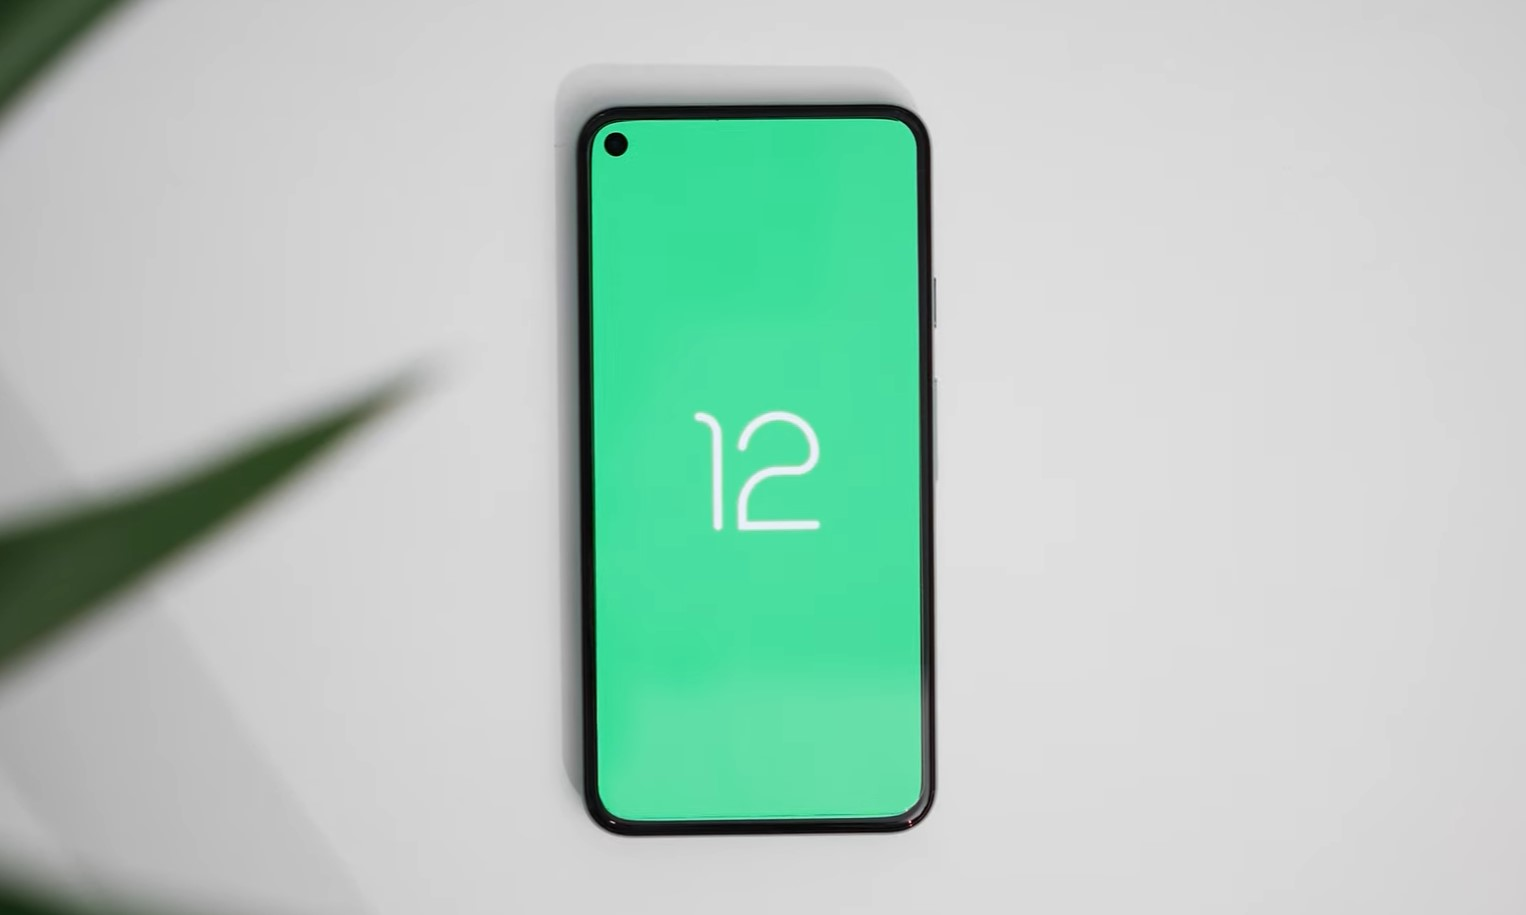 How to Install Android 12 Developer Preview on Pixel Phones